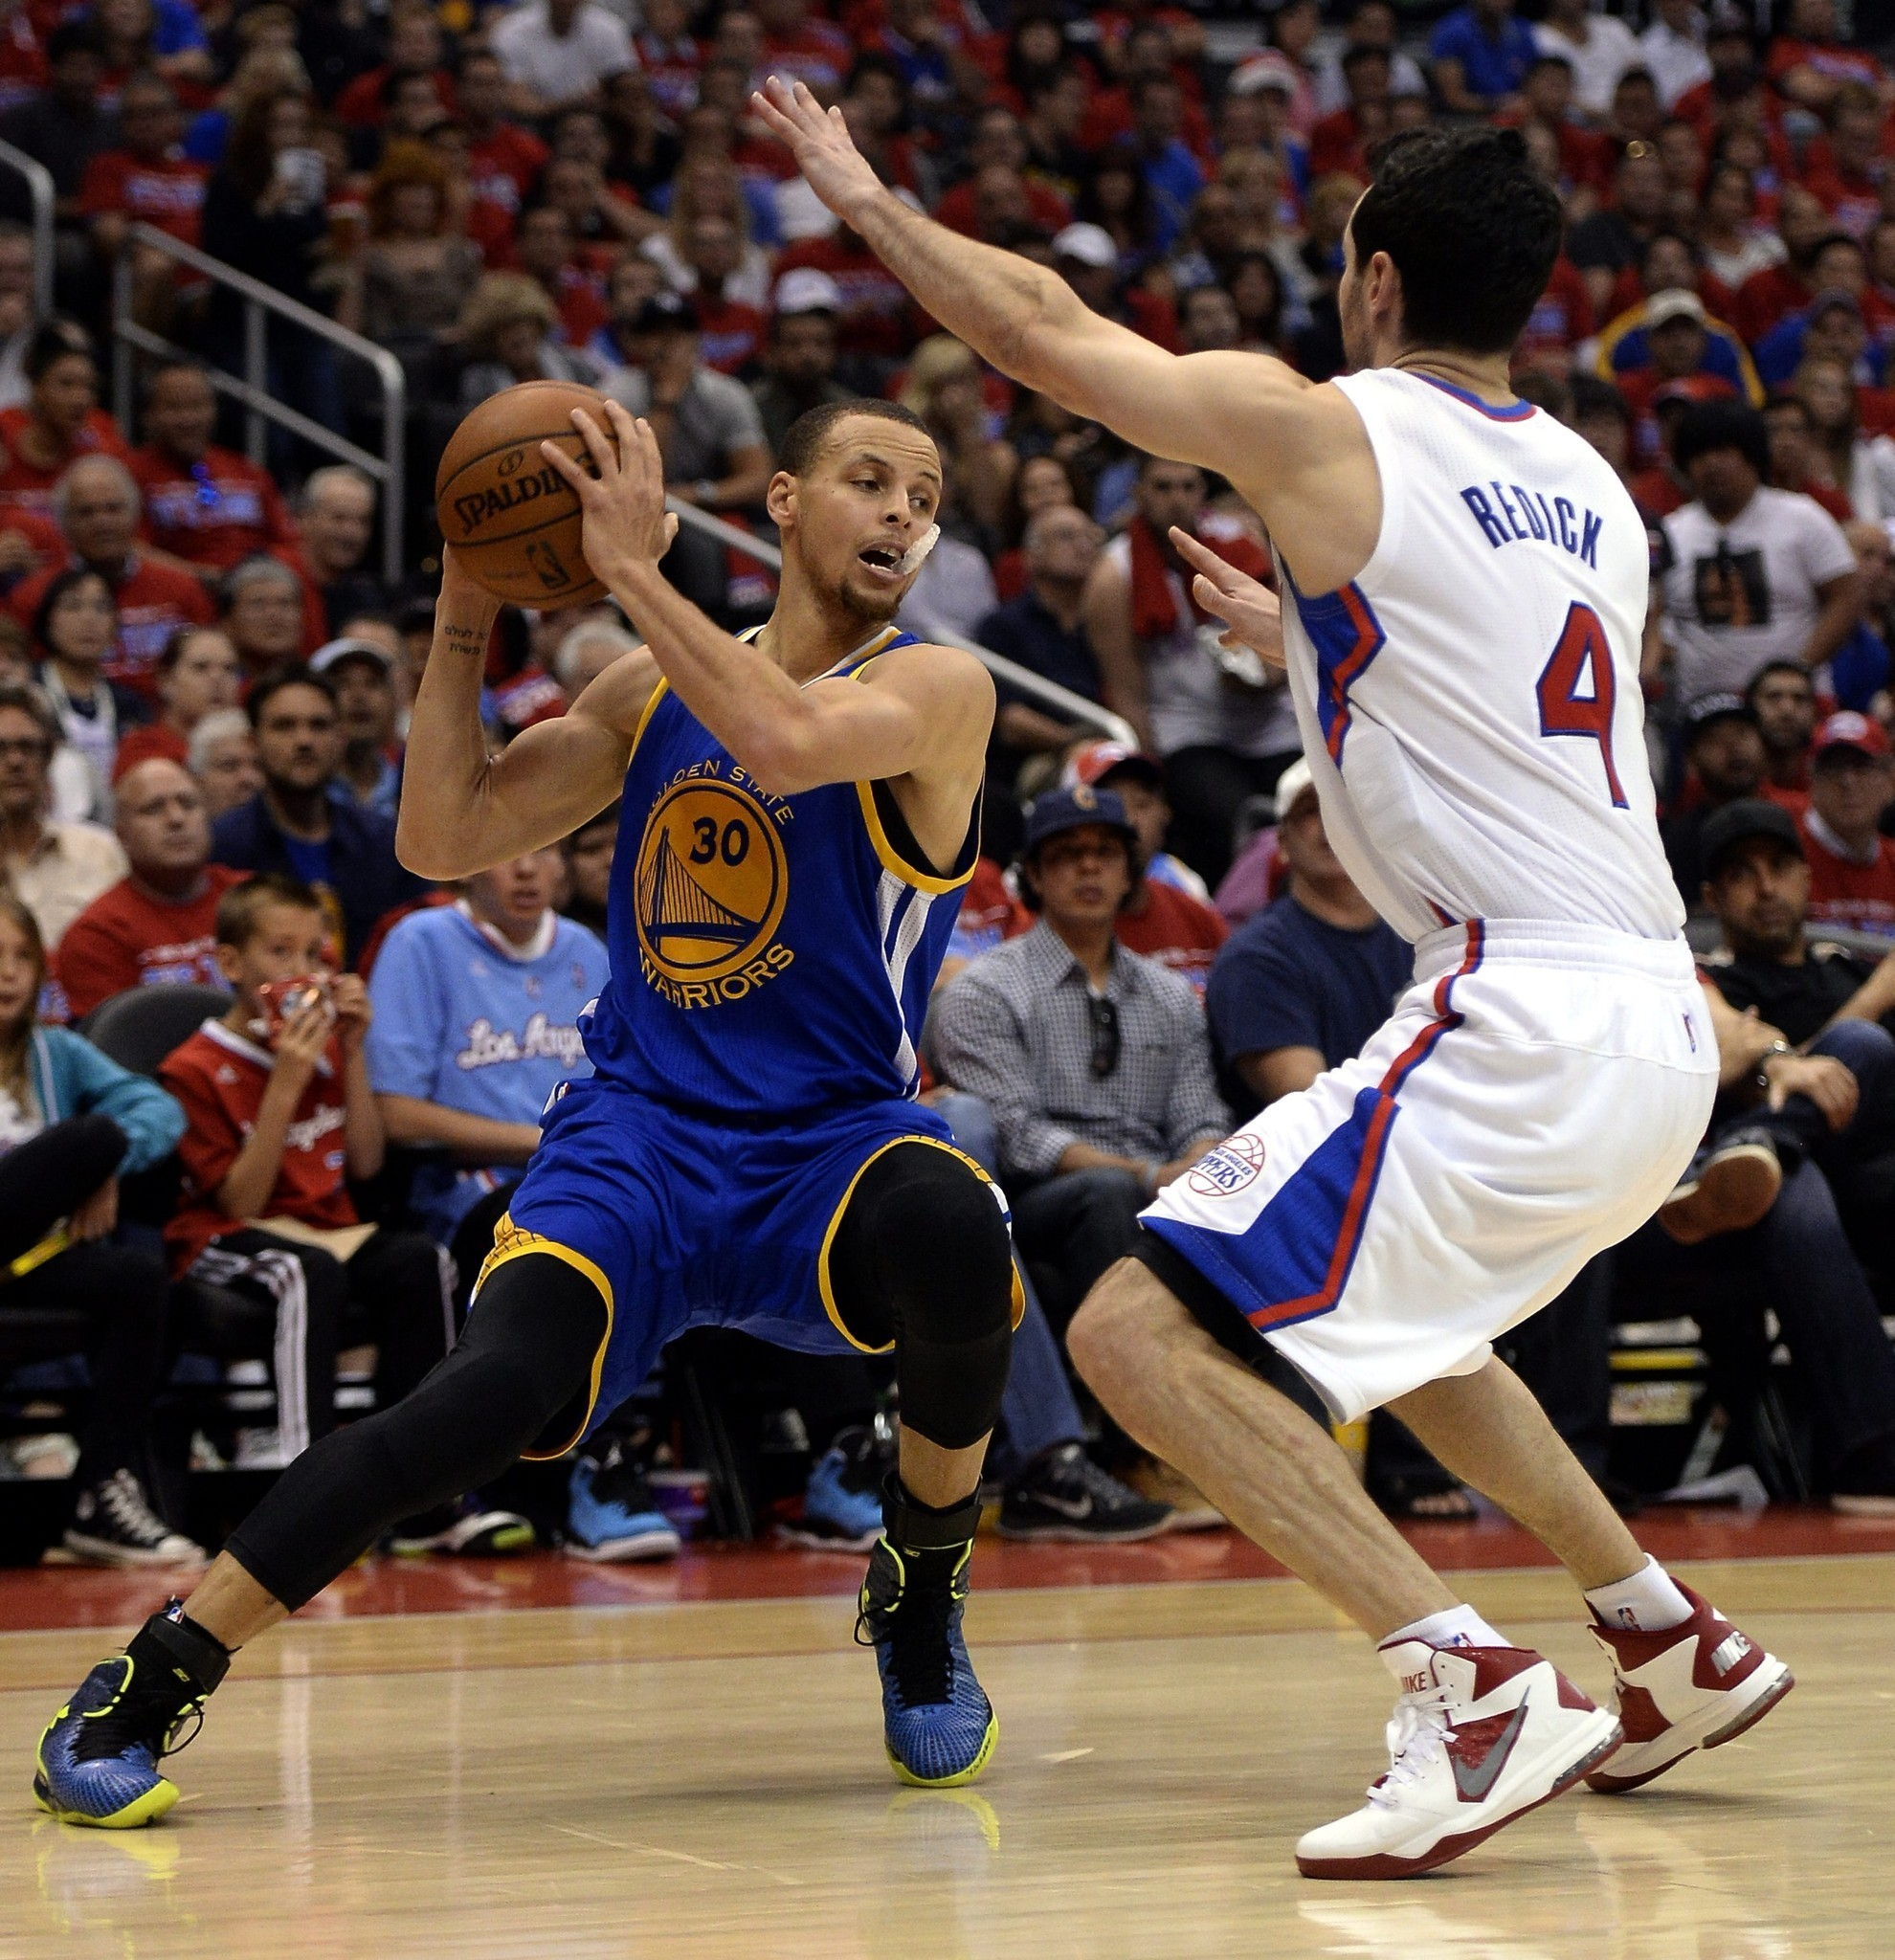 la clippers vs golden state warriors